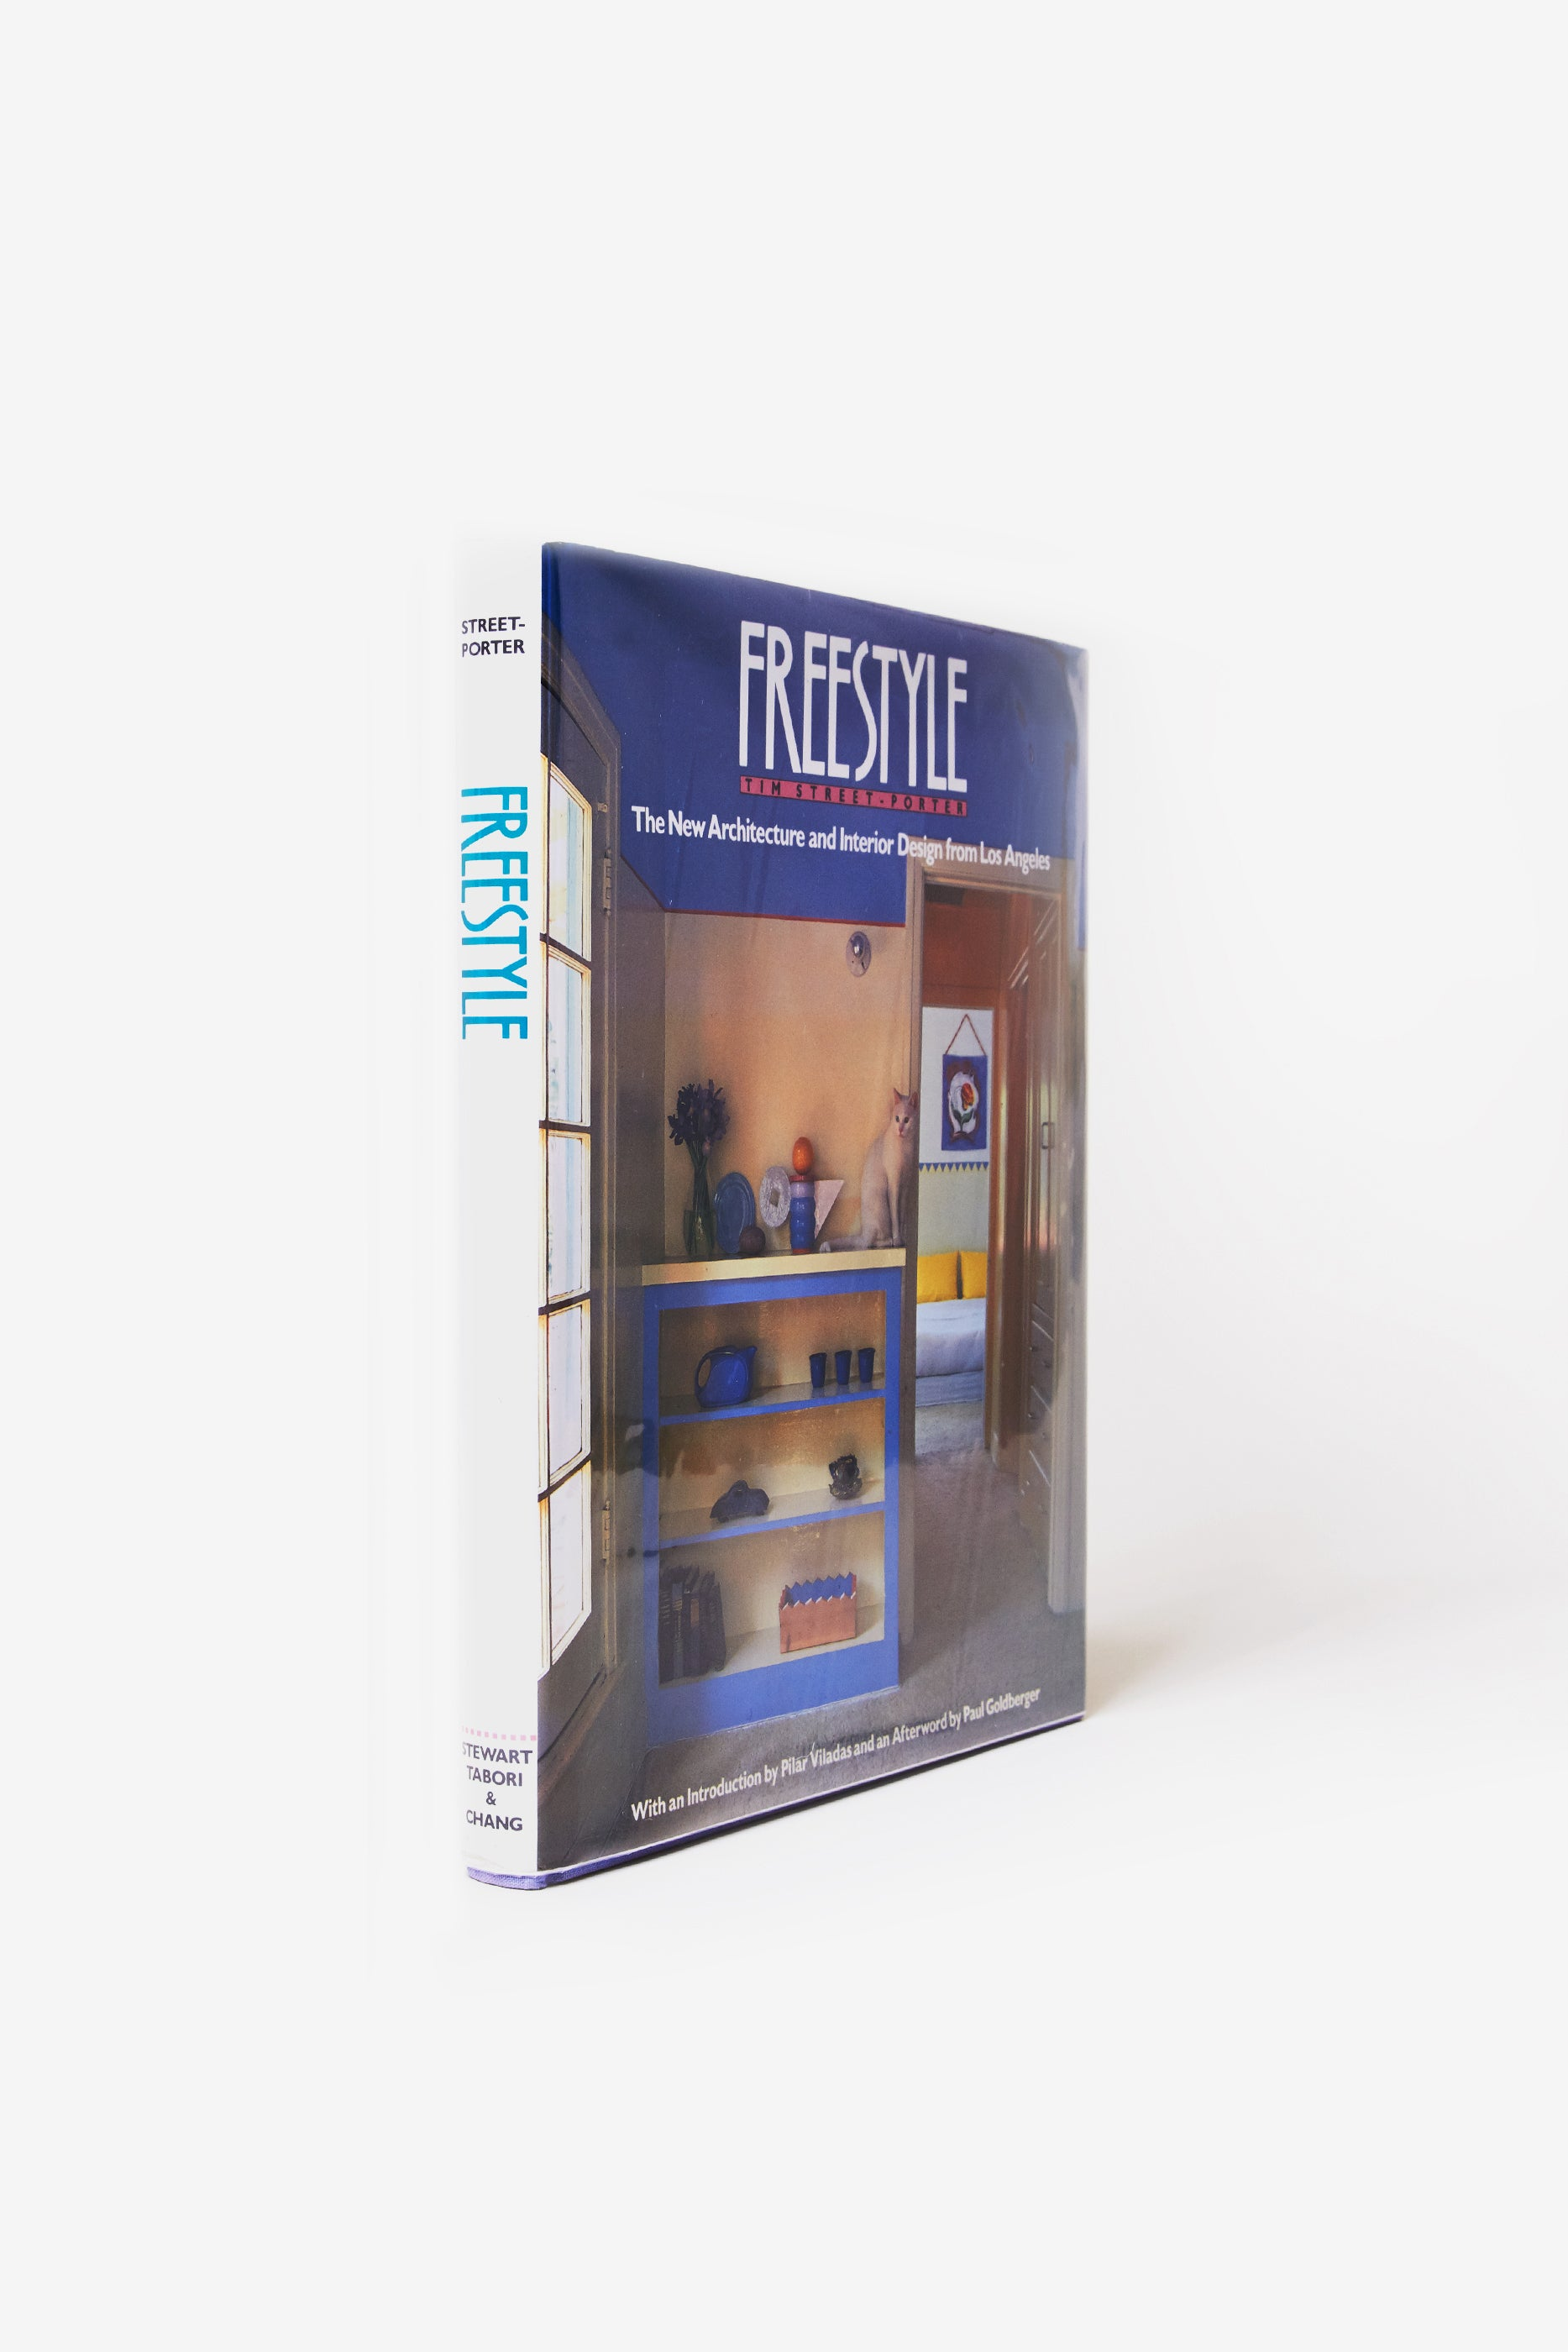 Freestyle: The New Architecture and Interior Design from Los Angeles / Tim Street-Porter / 1986 / 1st hc